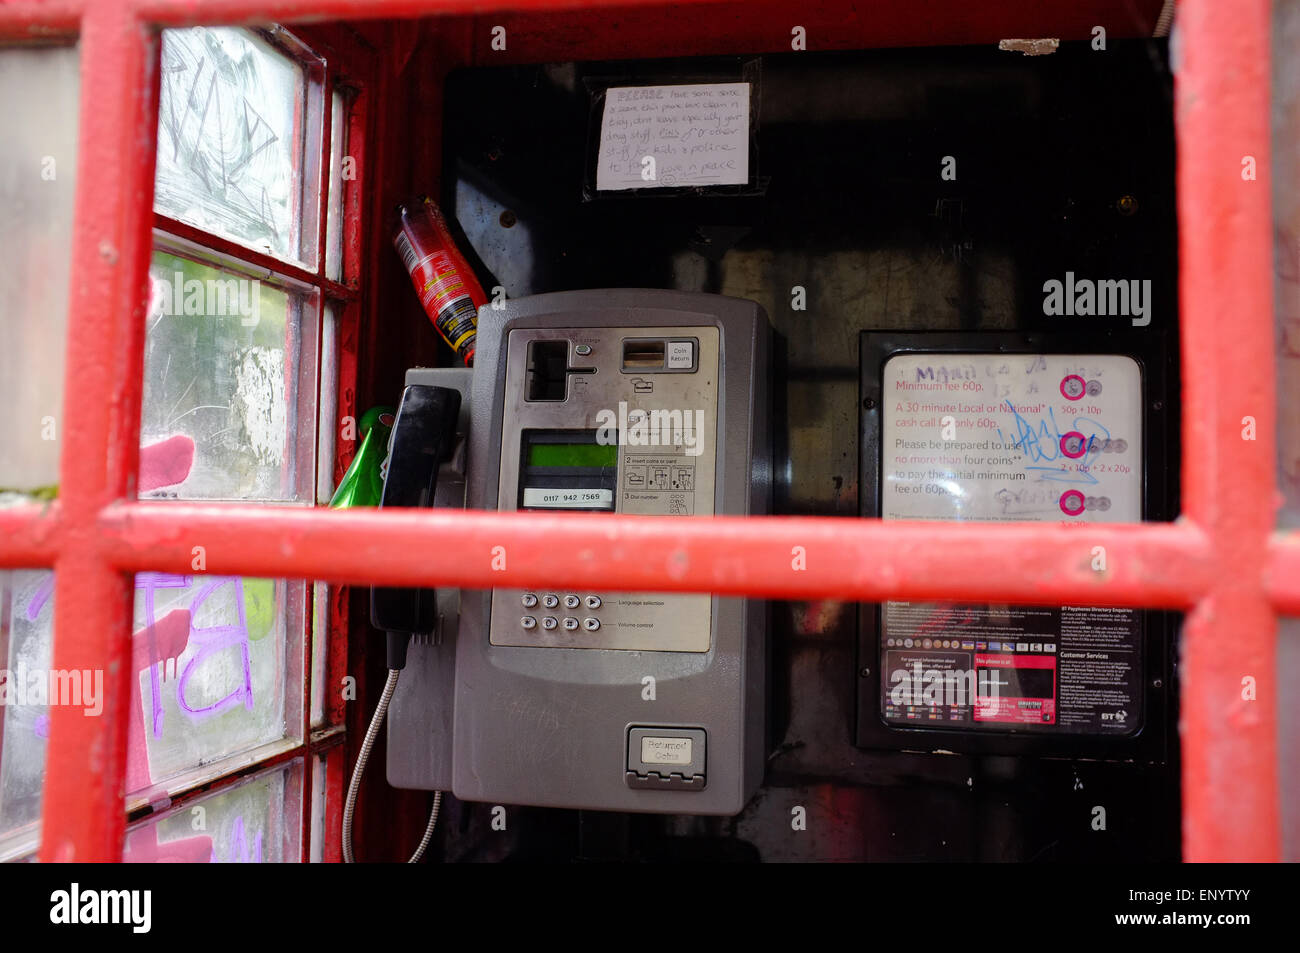 A vandalised red public telephone box in Bristol. - Stock Image